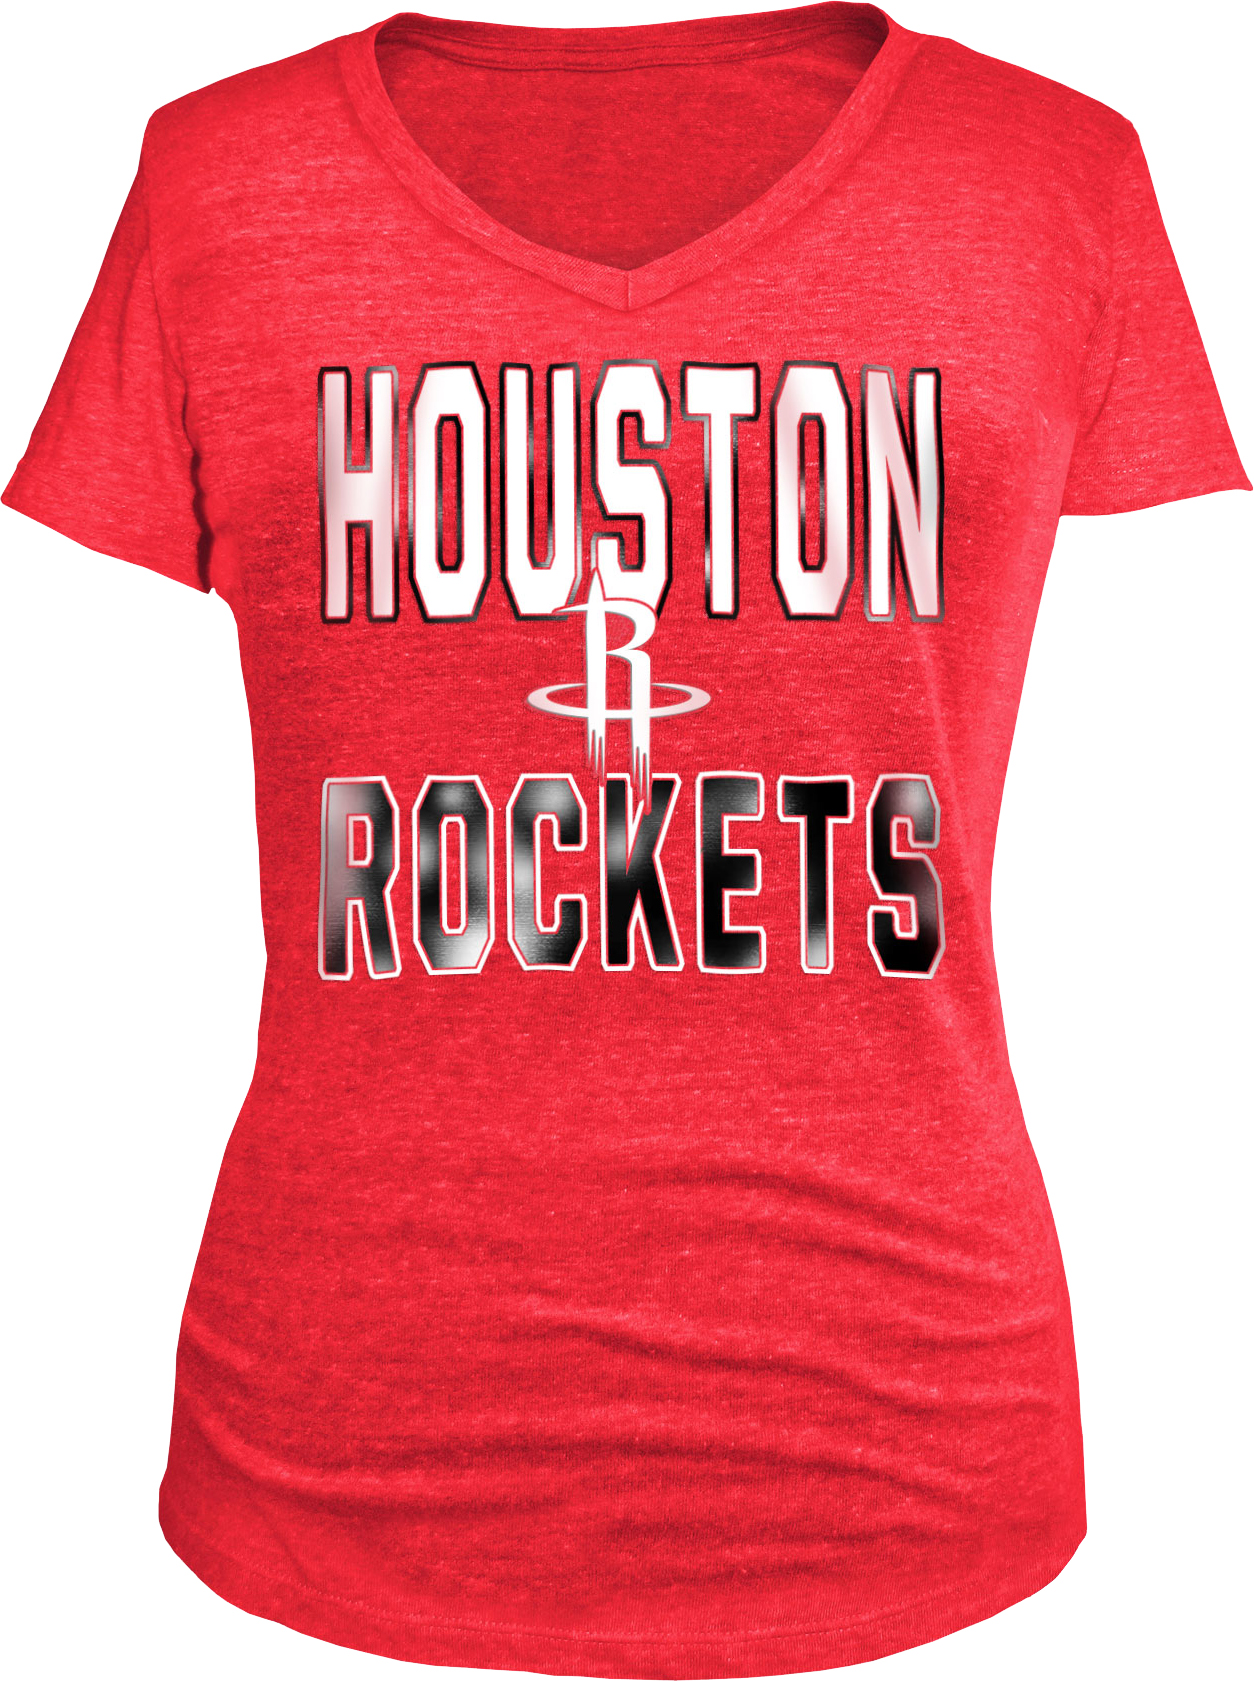 5th & Ocean Clothing Women's Houston Rockets Stacked Foil T-shirt